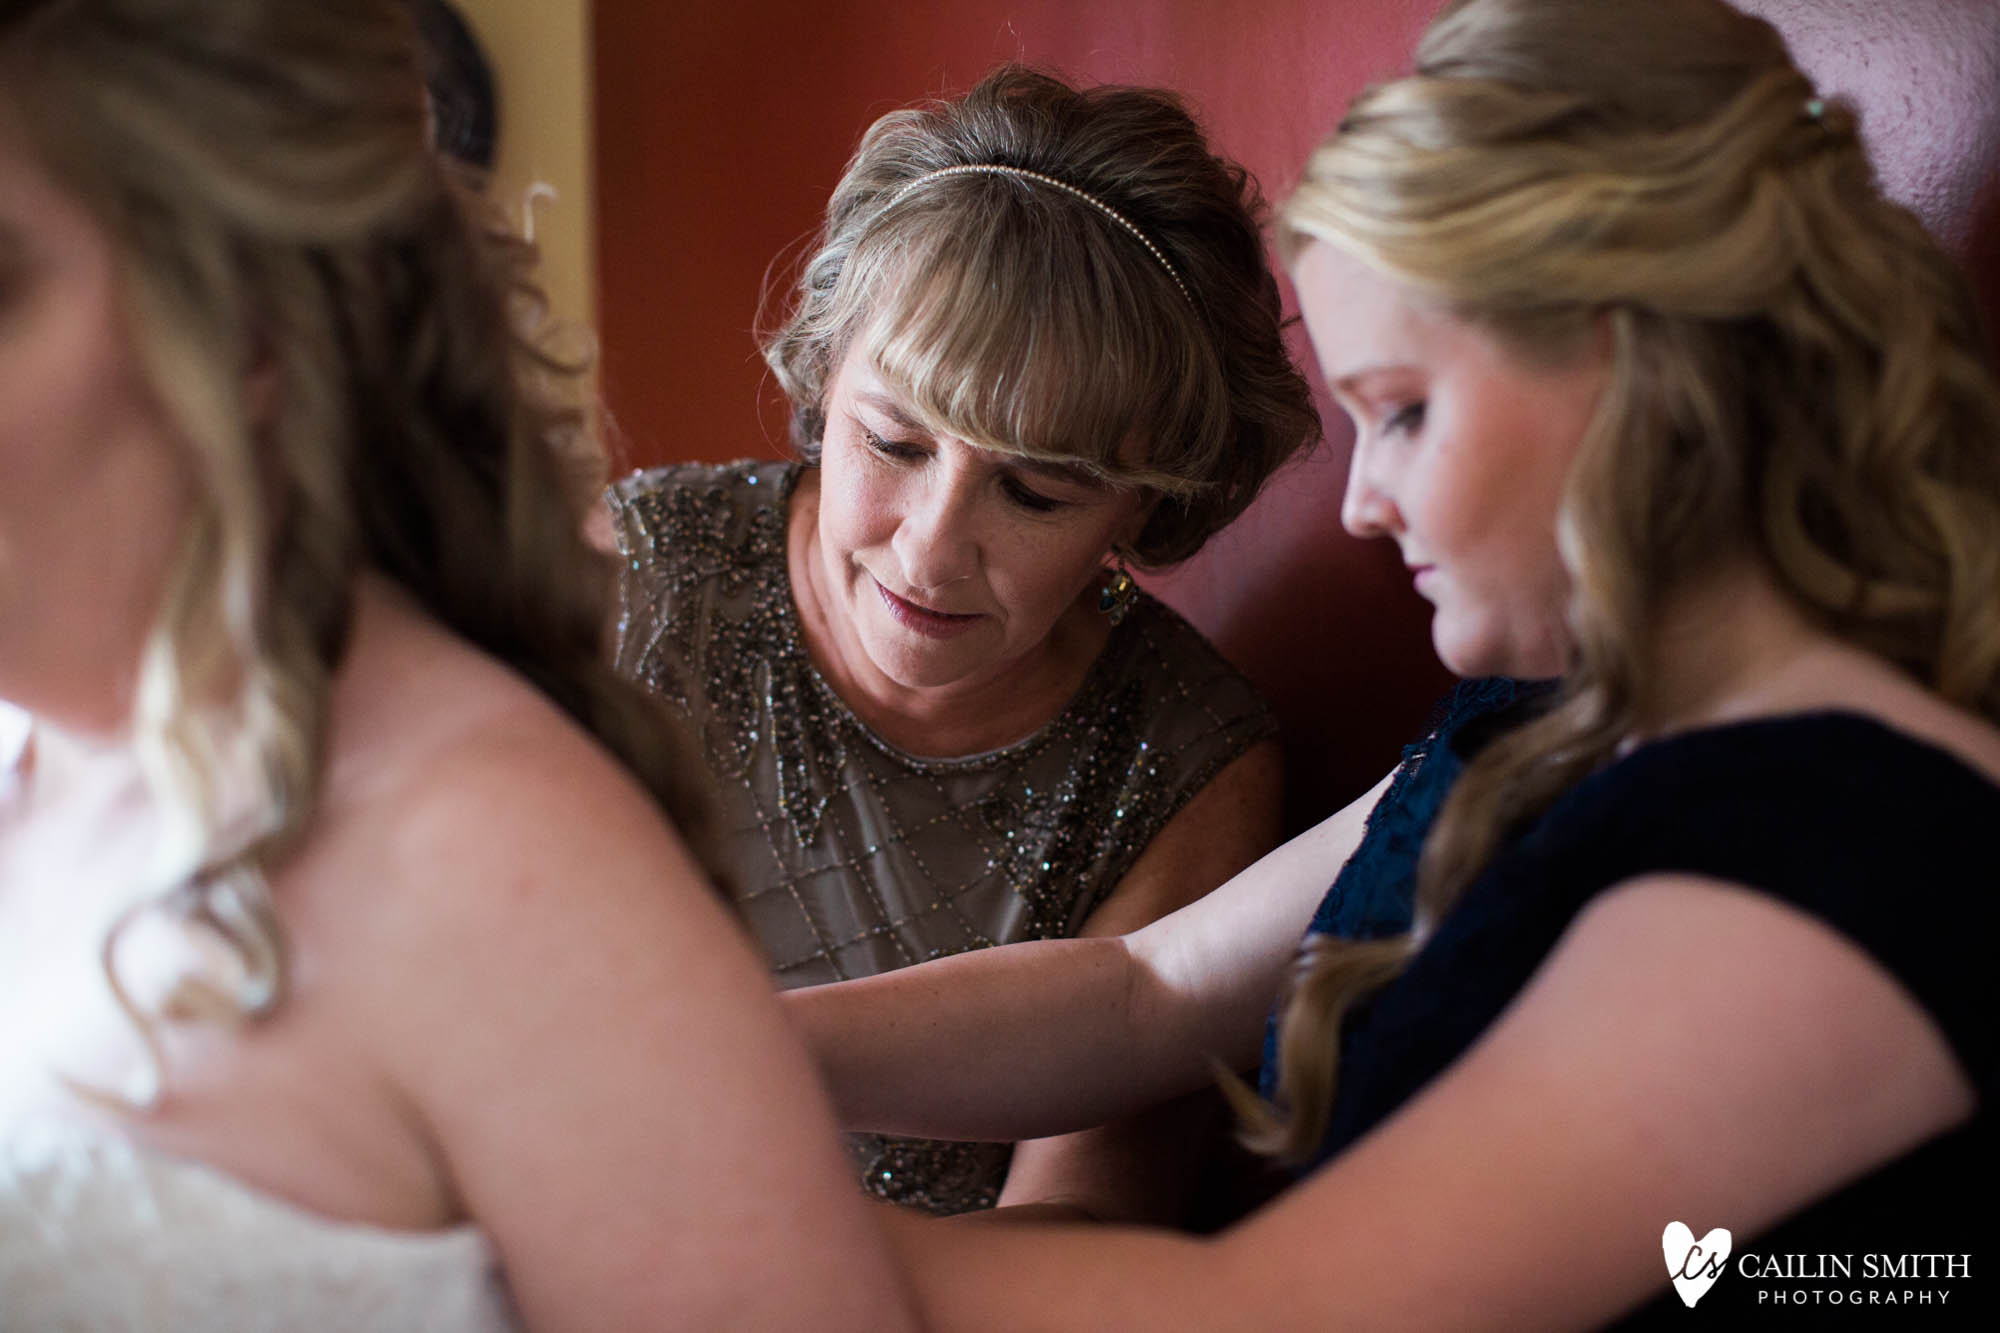 Christie_Nathan_Wedding_Photography_0007.jpg